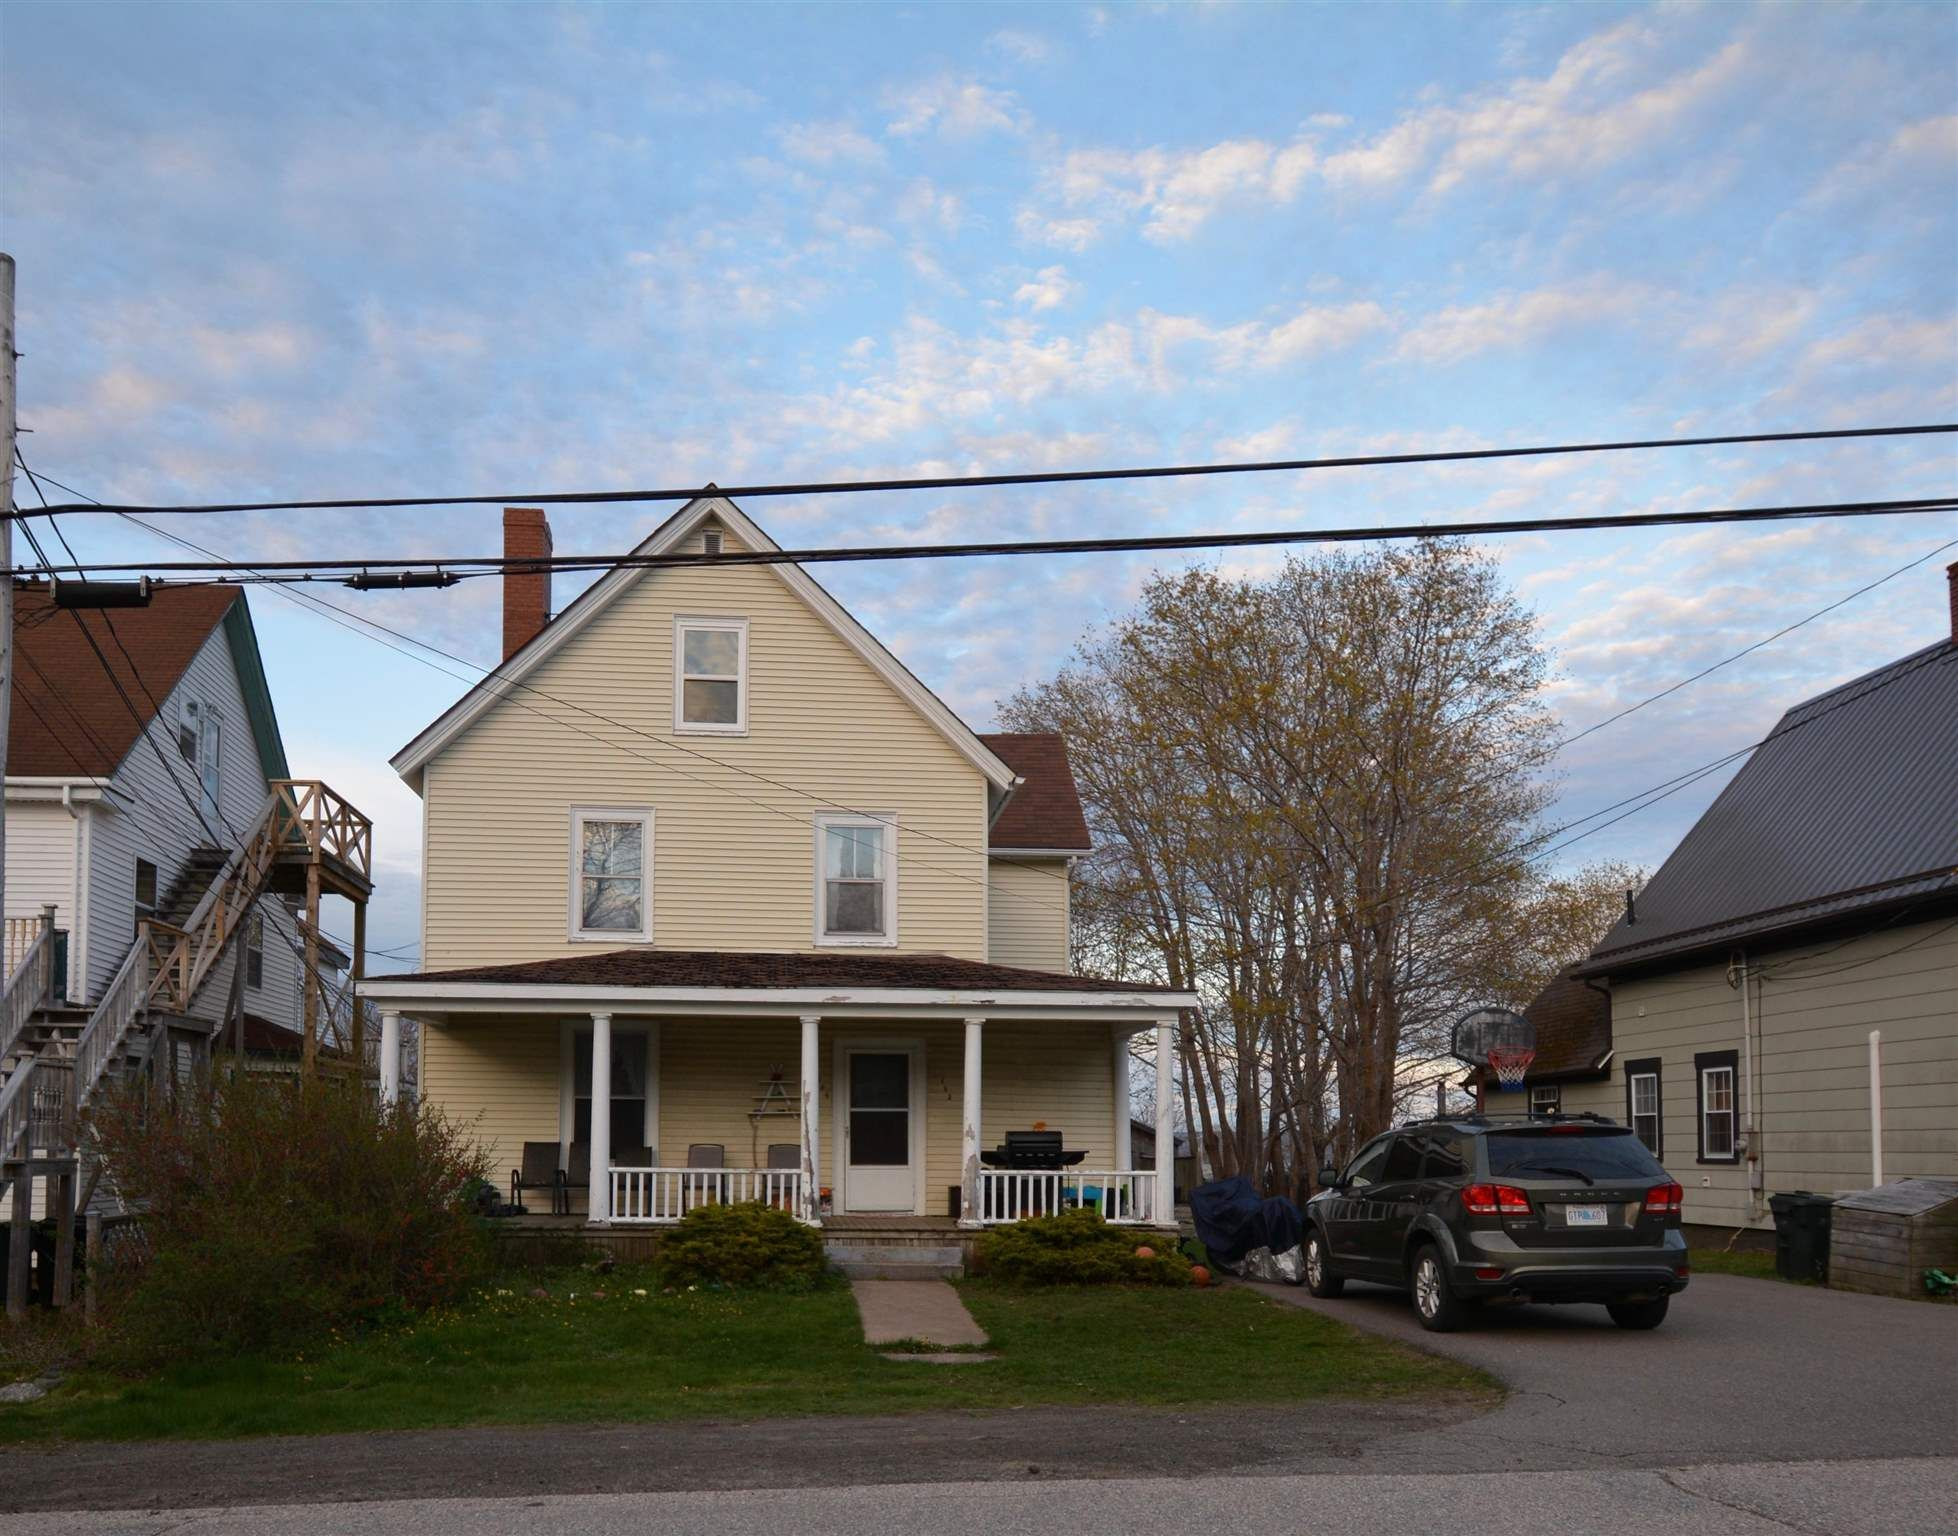 Main Photo: 182/184 QUEEN STREET in Digby: 401-Digby County Multi-Family for sale (Annapolis Valley)  : MLS®# 202111118